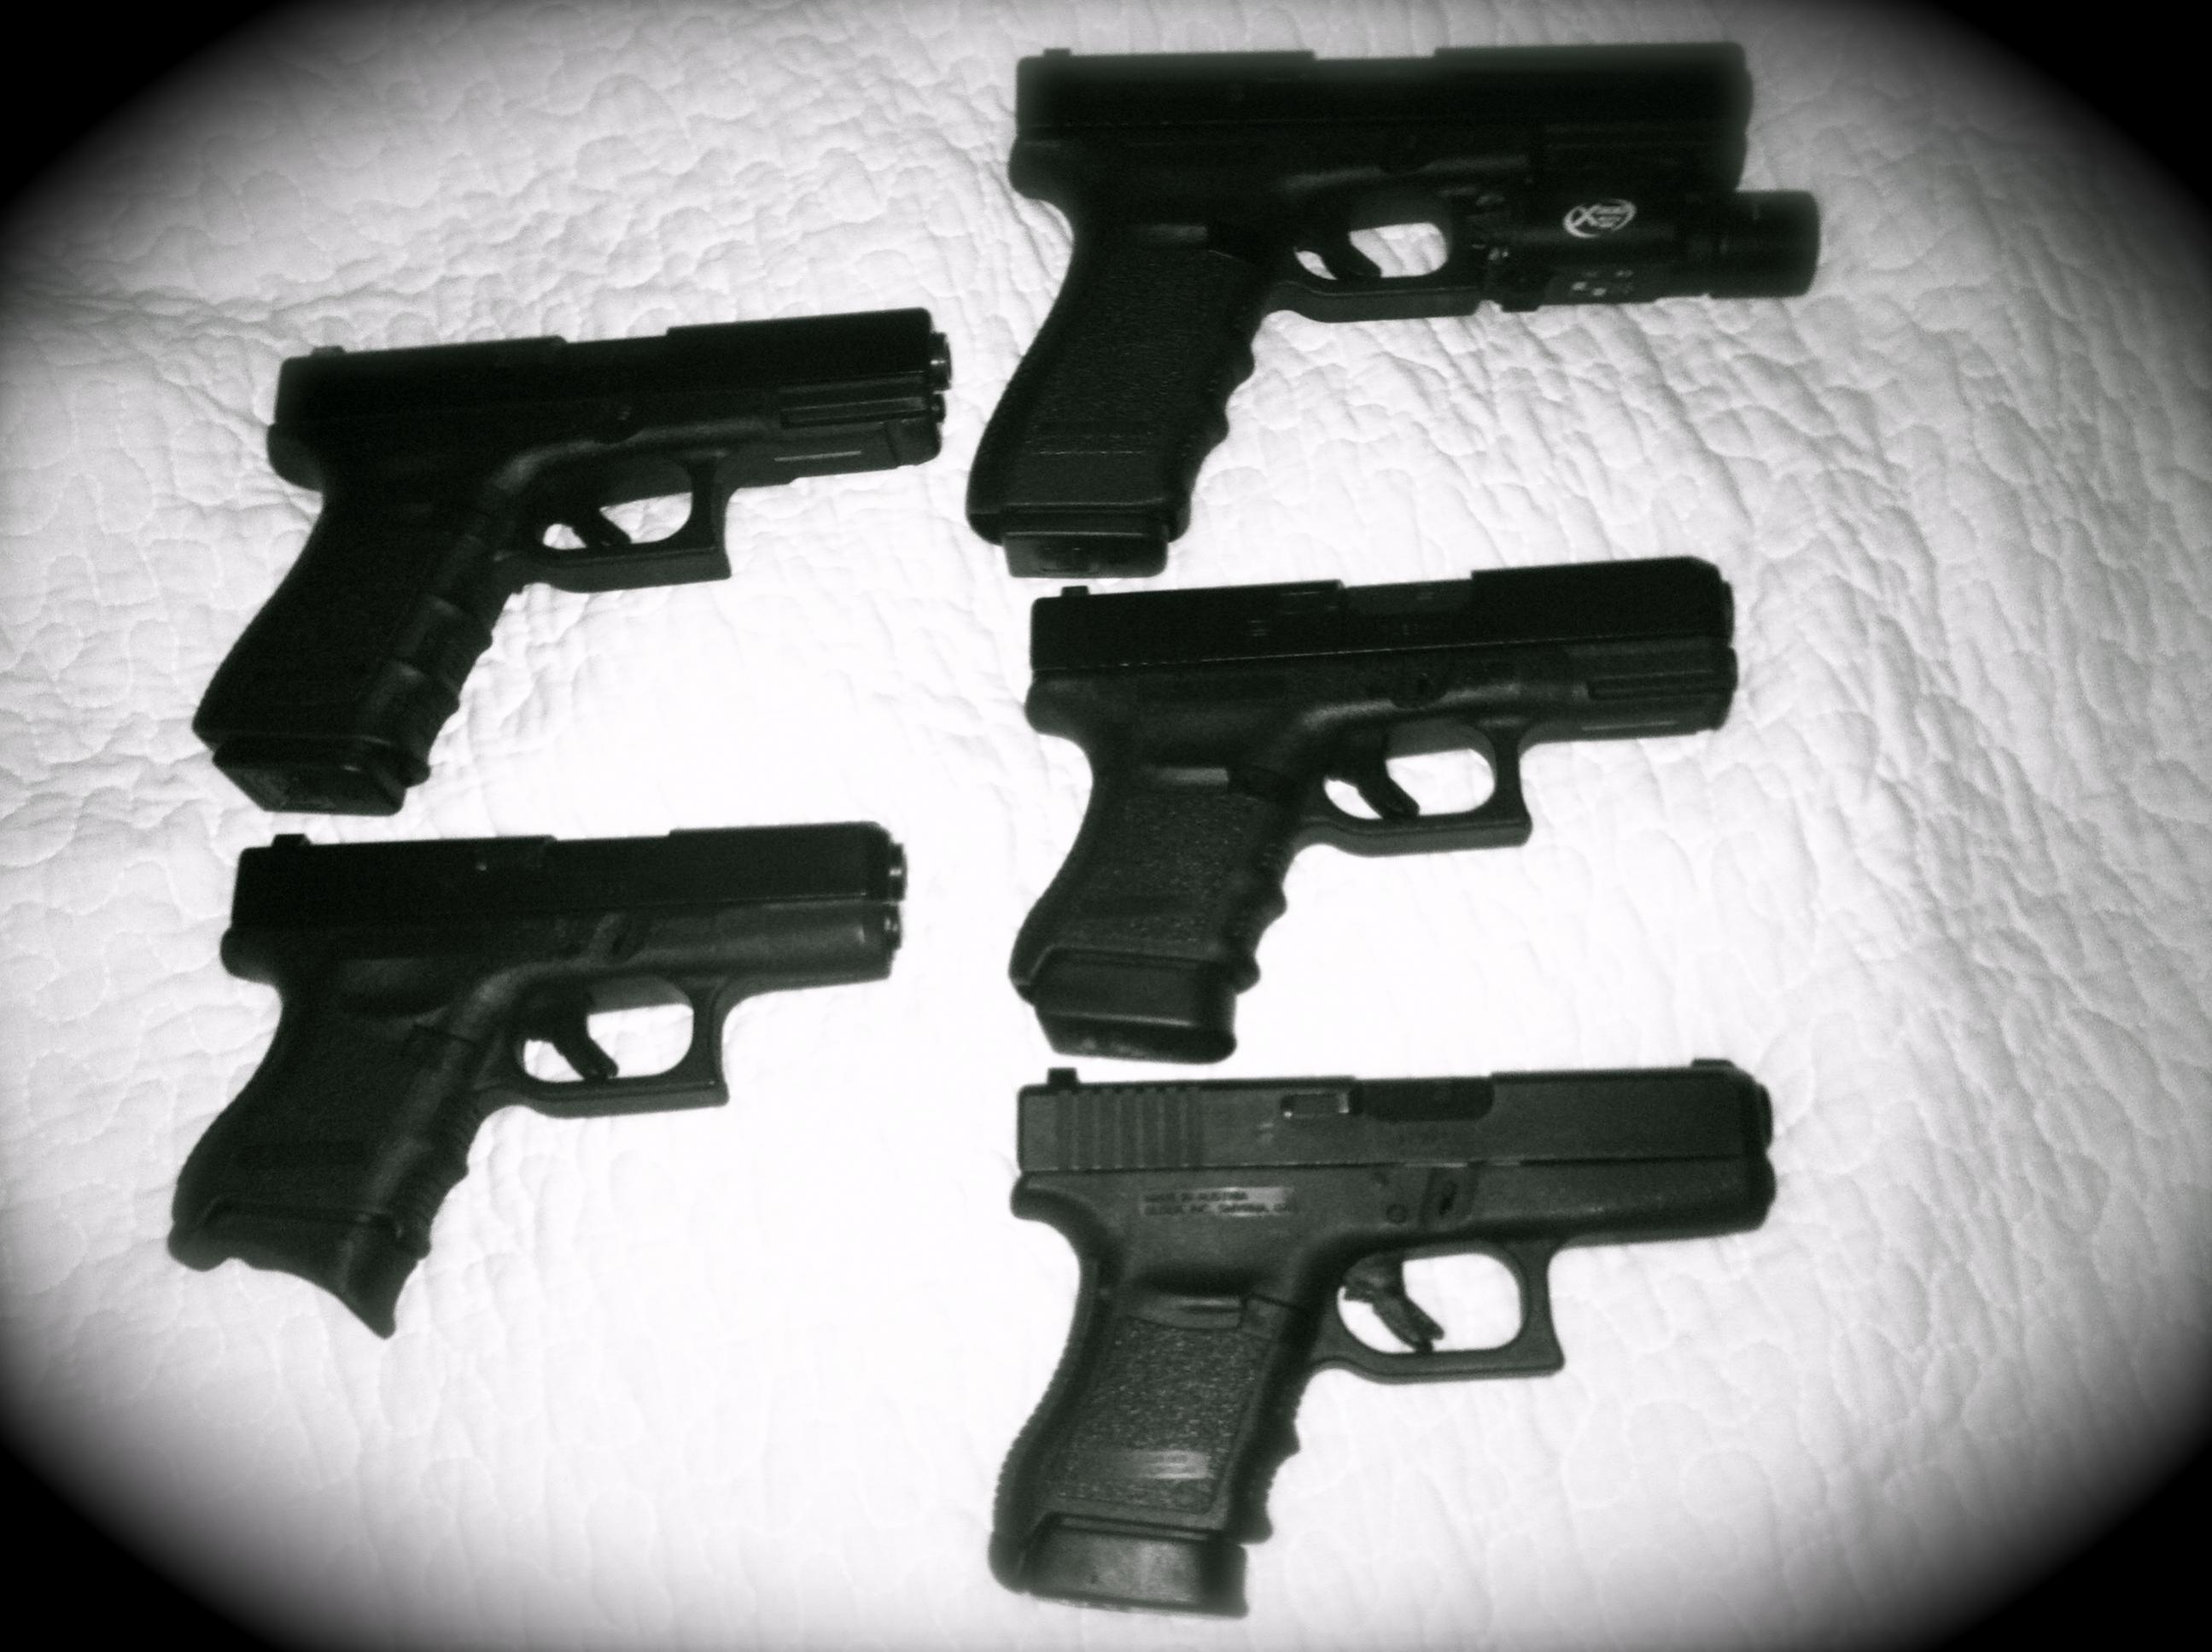 Show your love for the Glock-img_0225.jpg